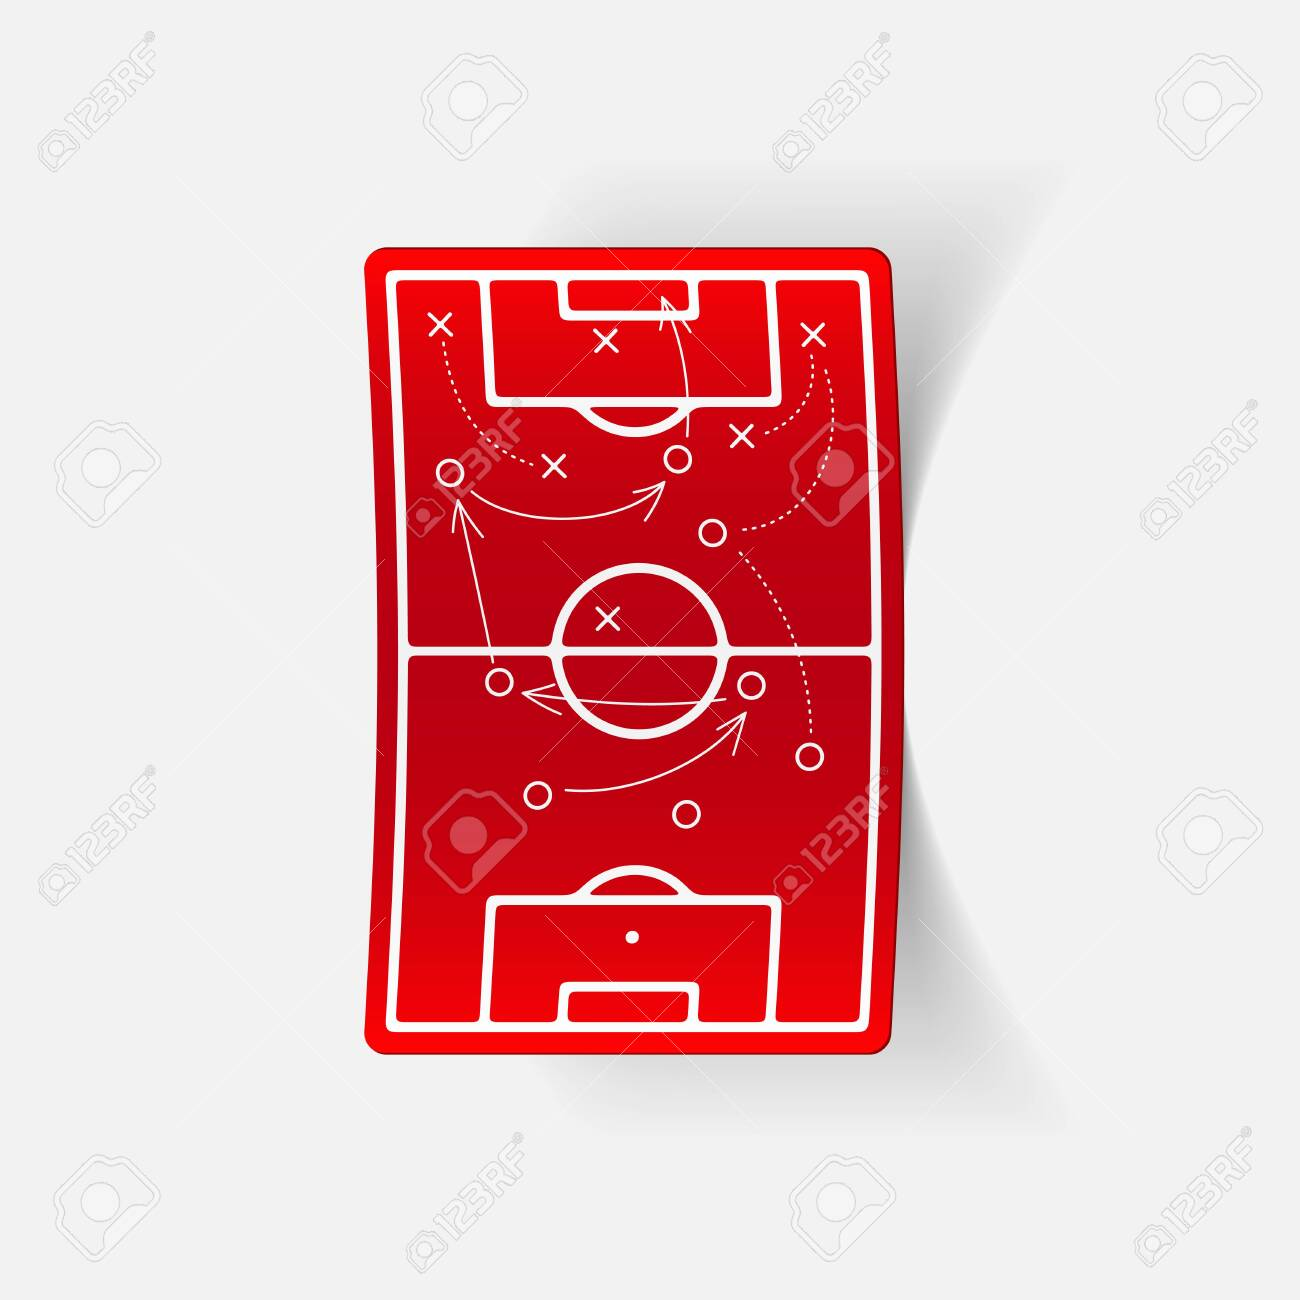 realistic design element: playing field Stock Vector - 29977898